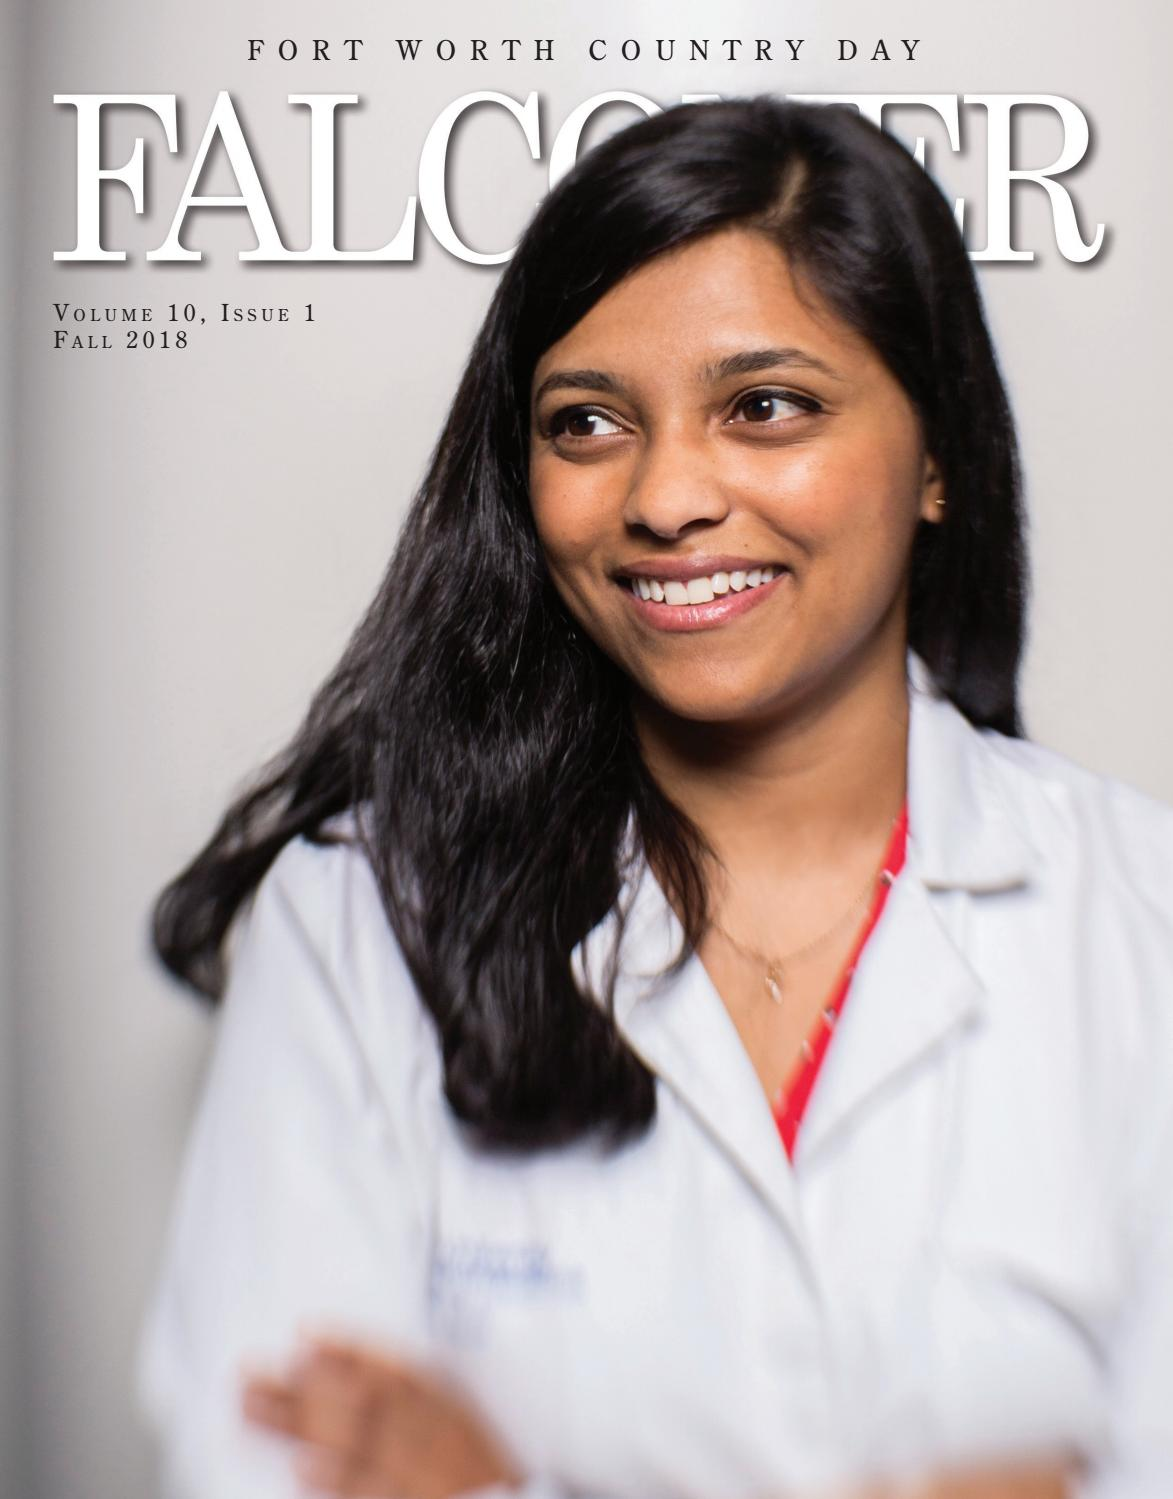 FWCD Falconer, Fall 2018 by Fort Worth Country Day - issuu